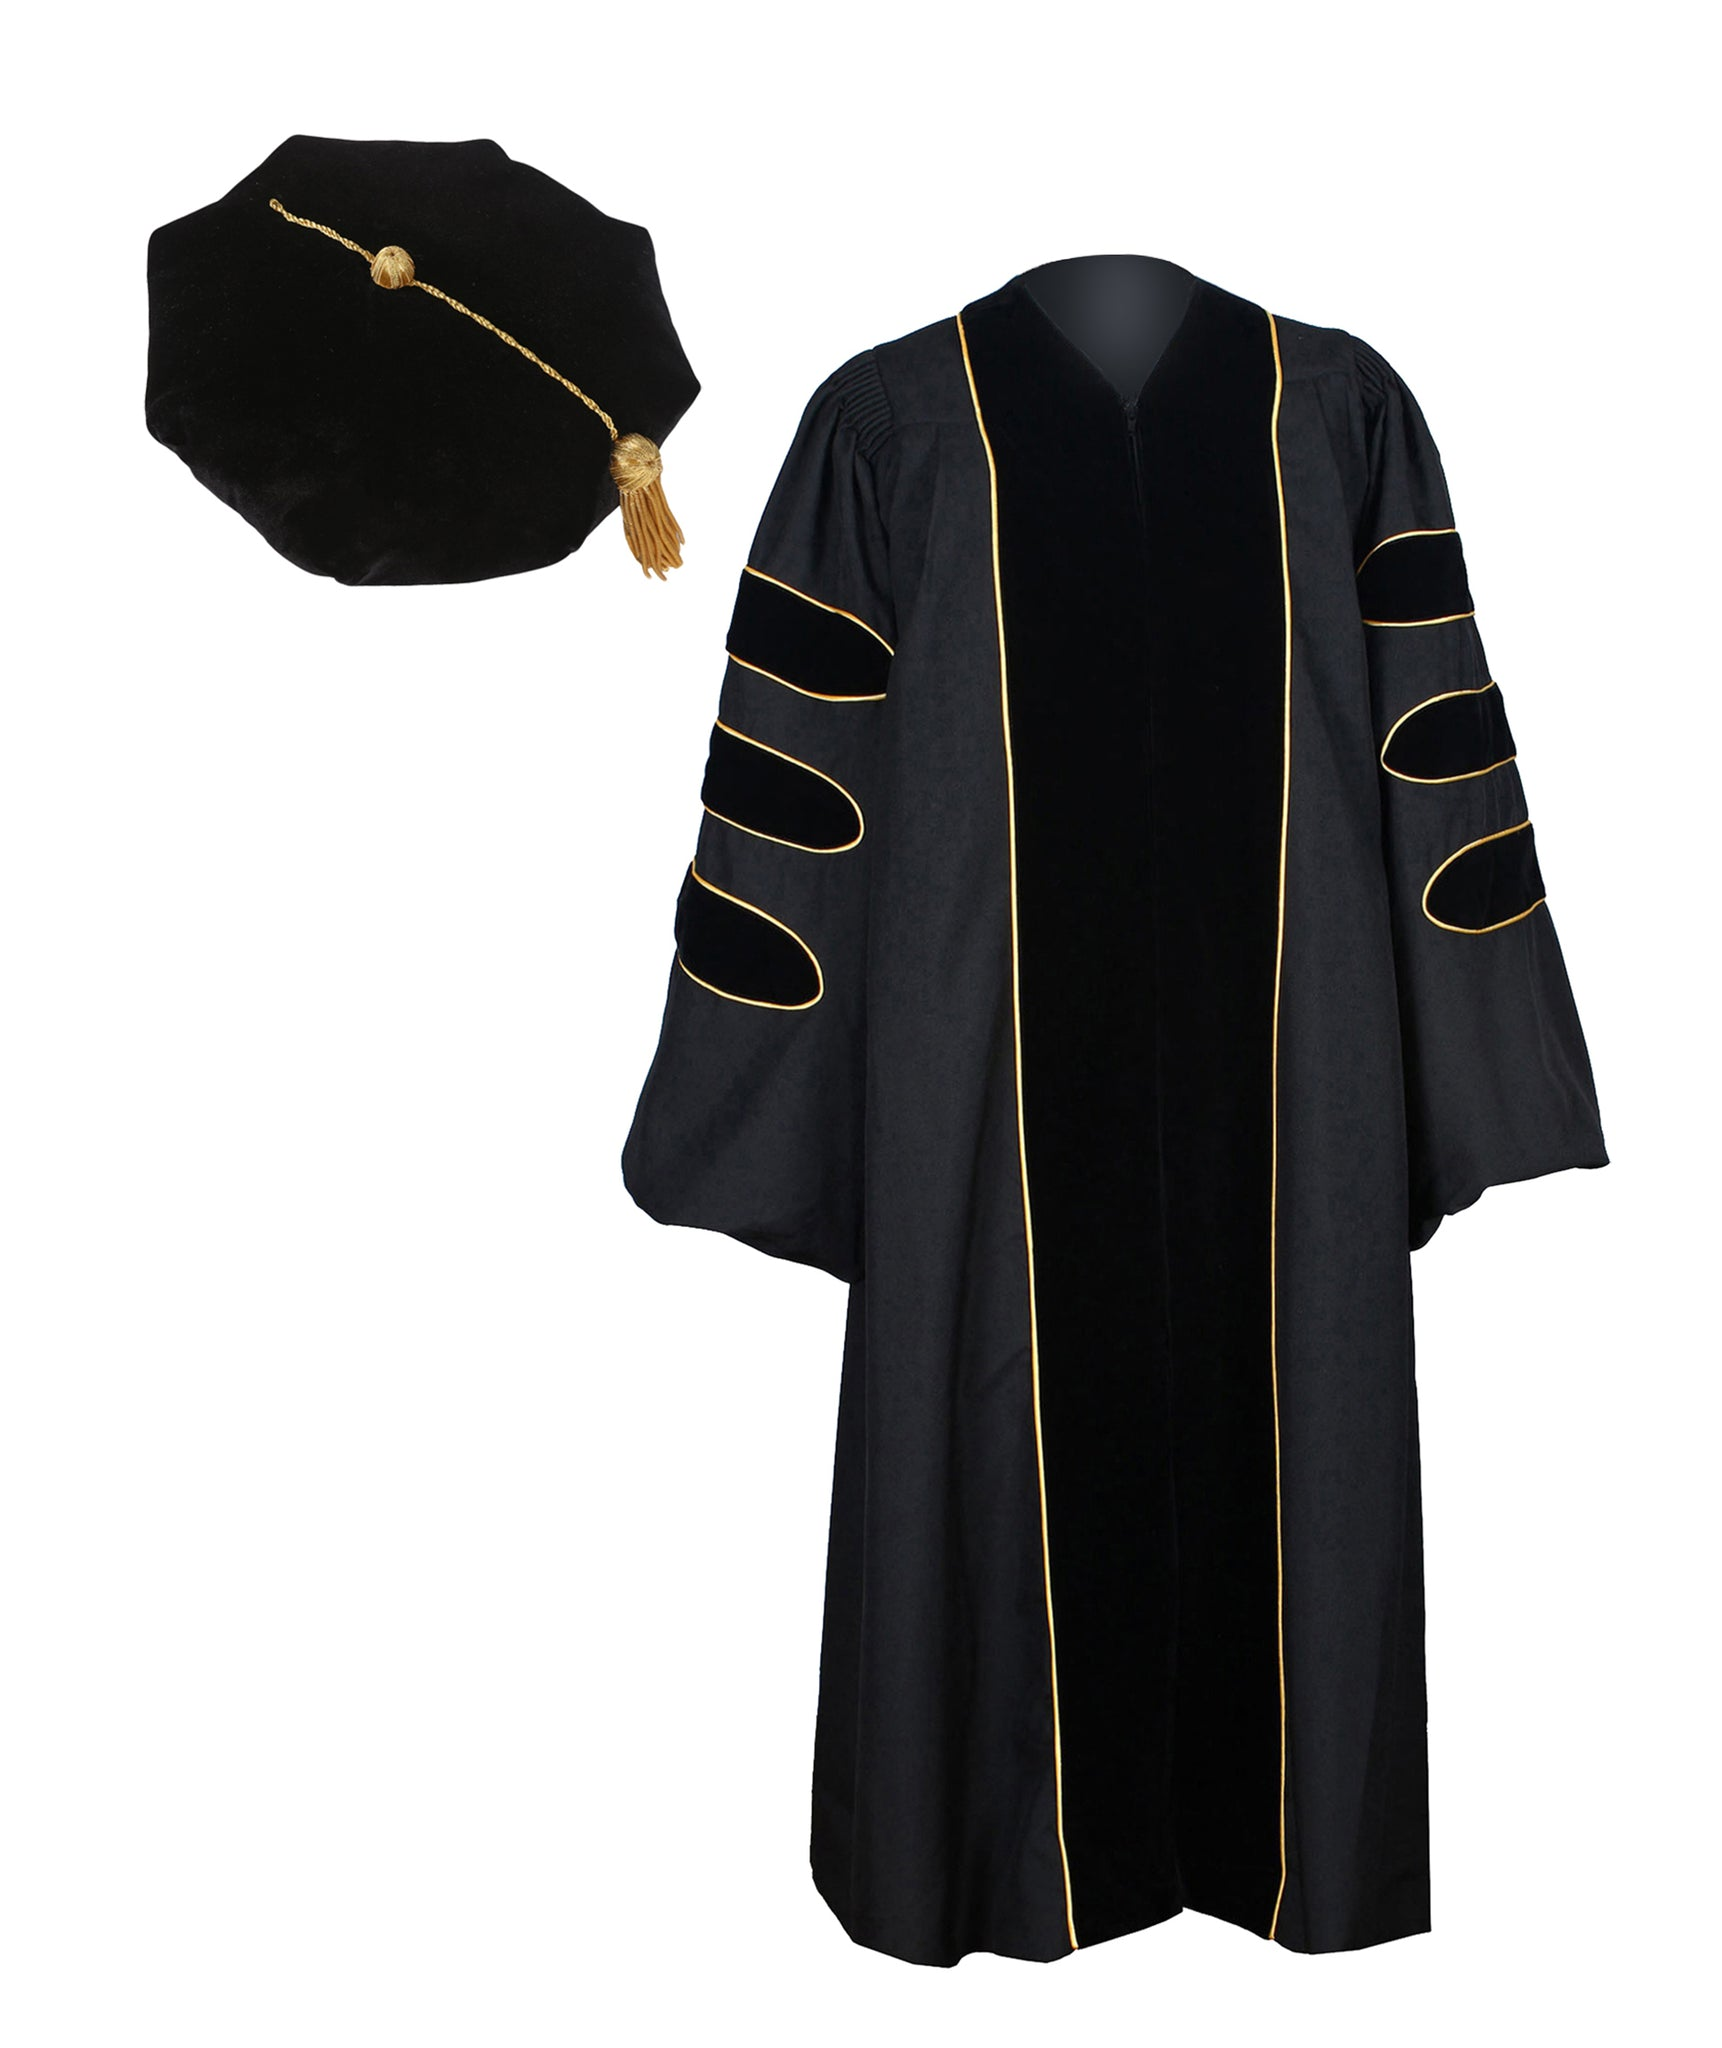 Deluxe Doctoral Gown and Tam Package Customization